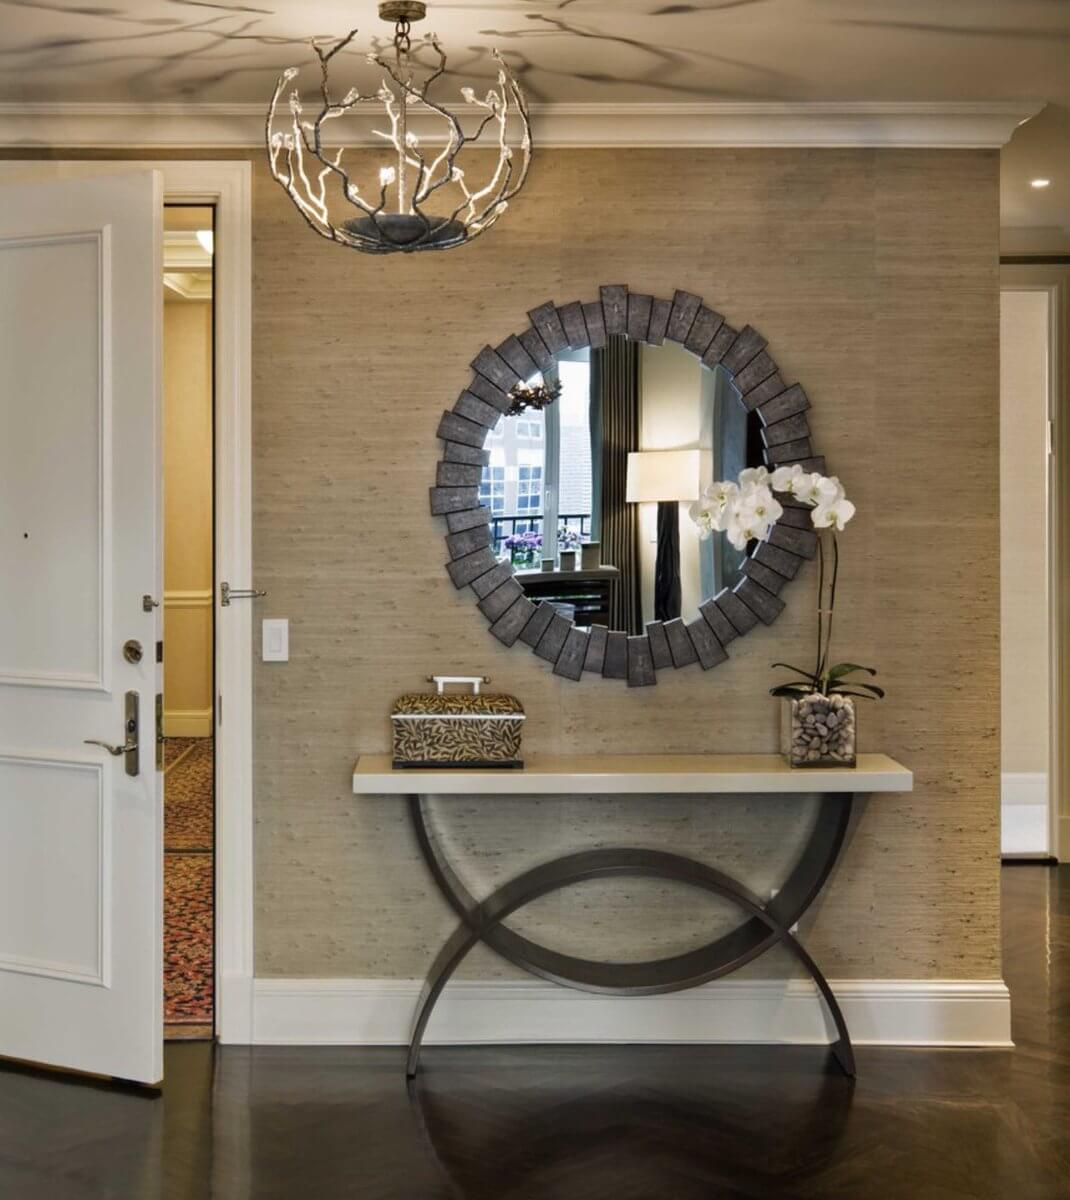 50+ Best Entry Table Ideas (Decorations and Designs) for 2021